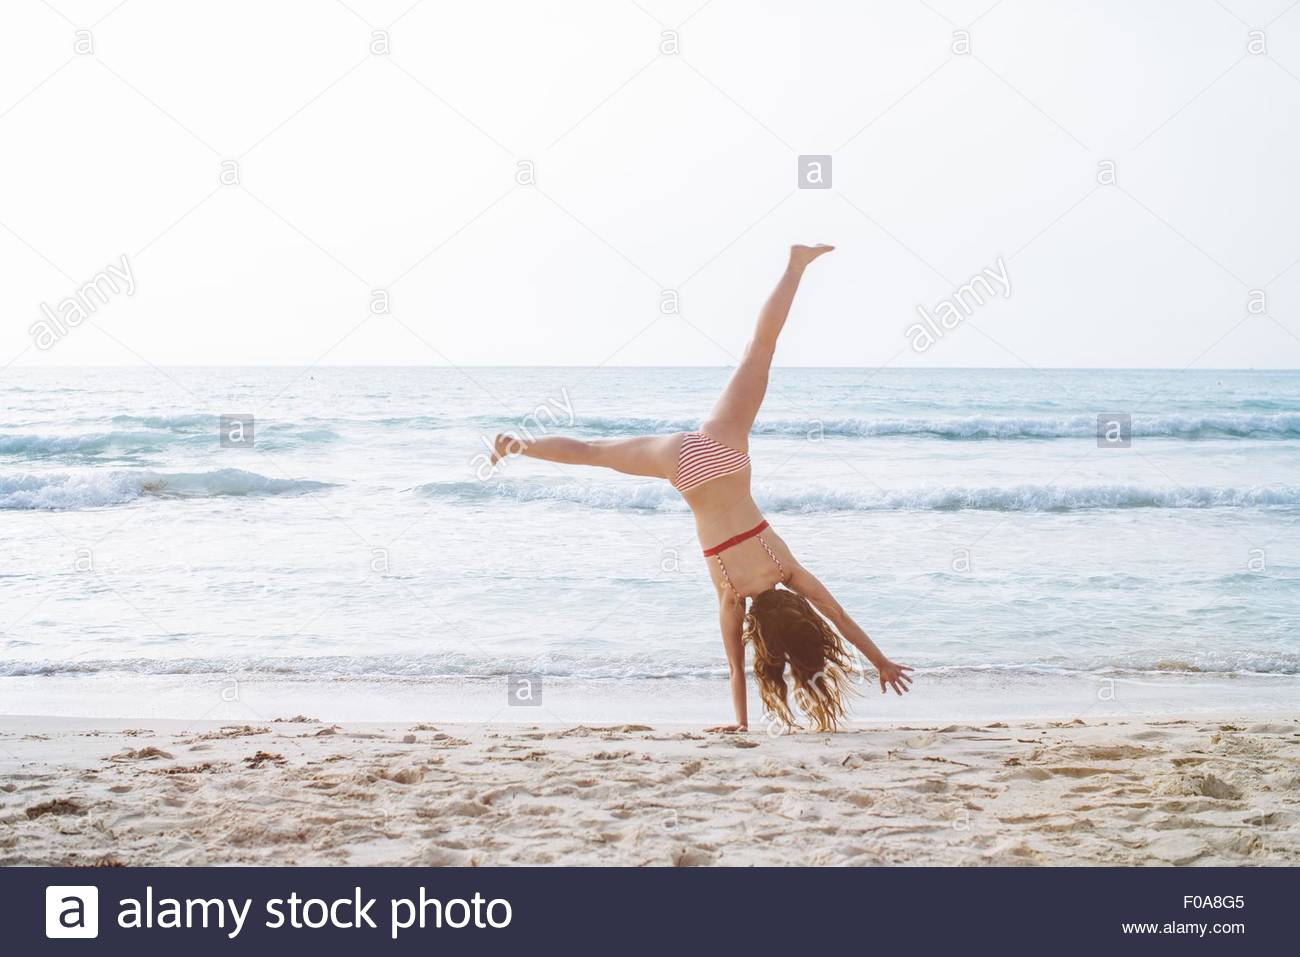 Young woman wearing bikini cartwheeling on beach Stock Photo